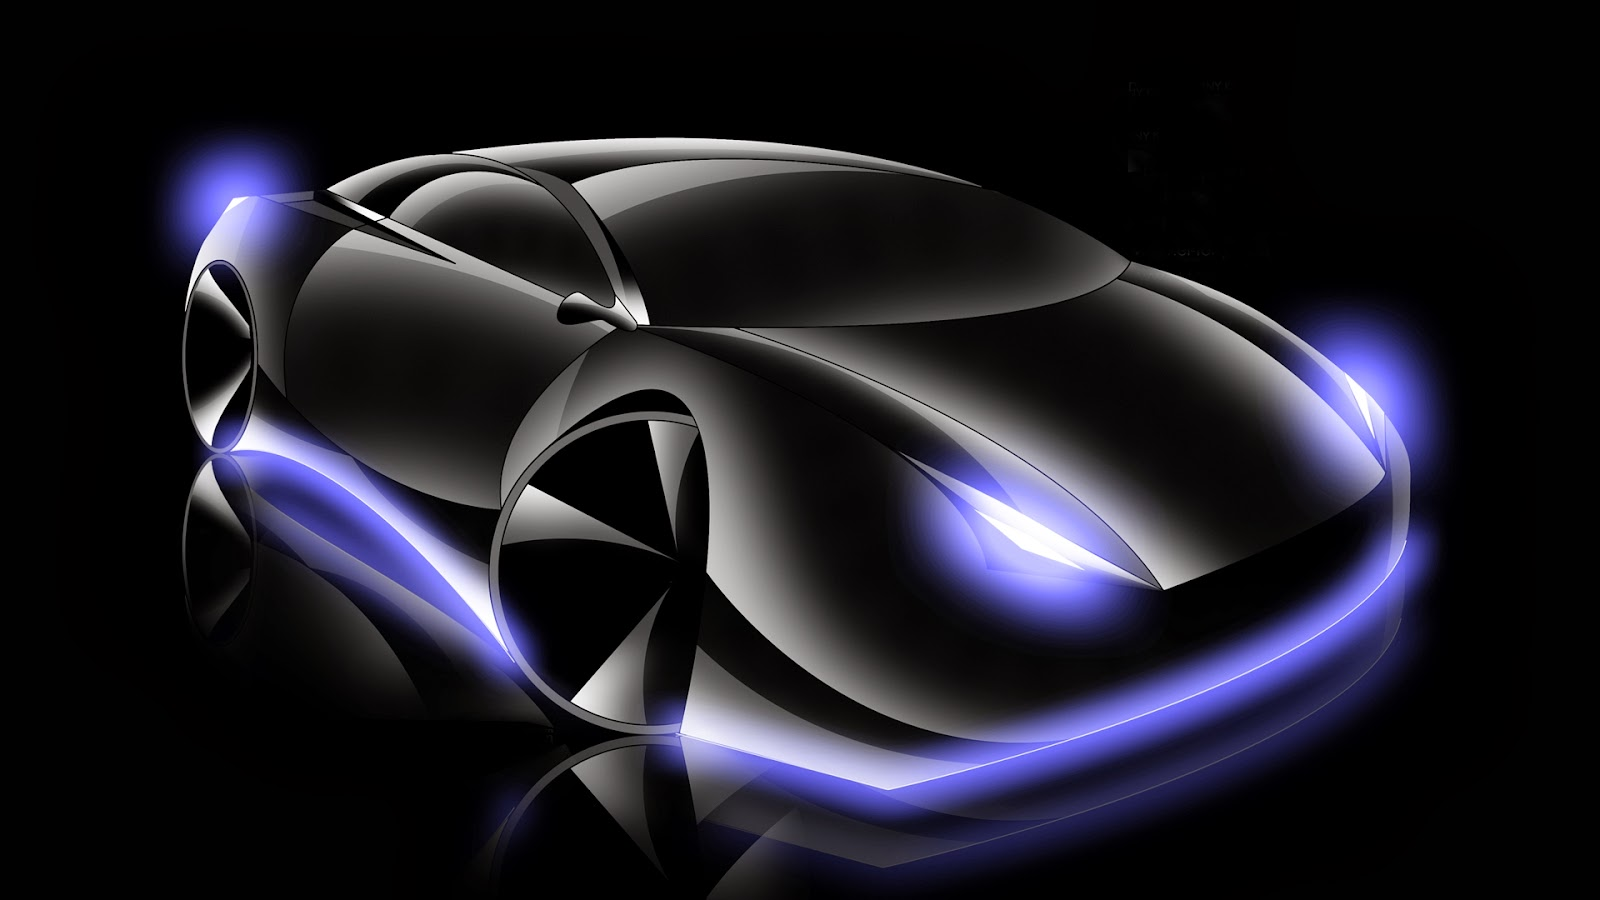 3d Car Wallpaper Free Desktop Best Wallpaper